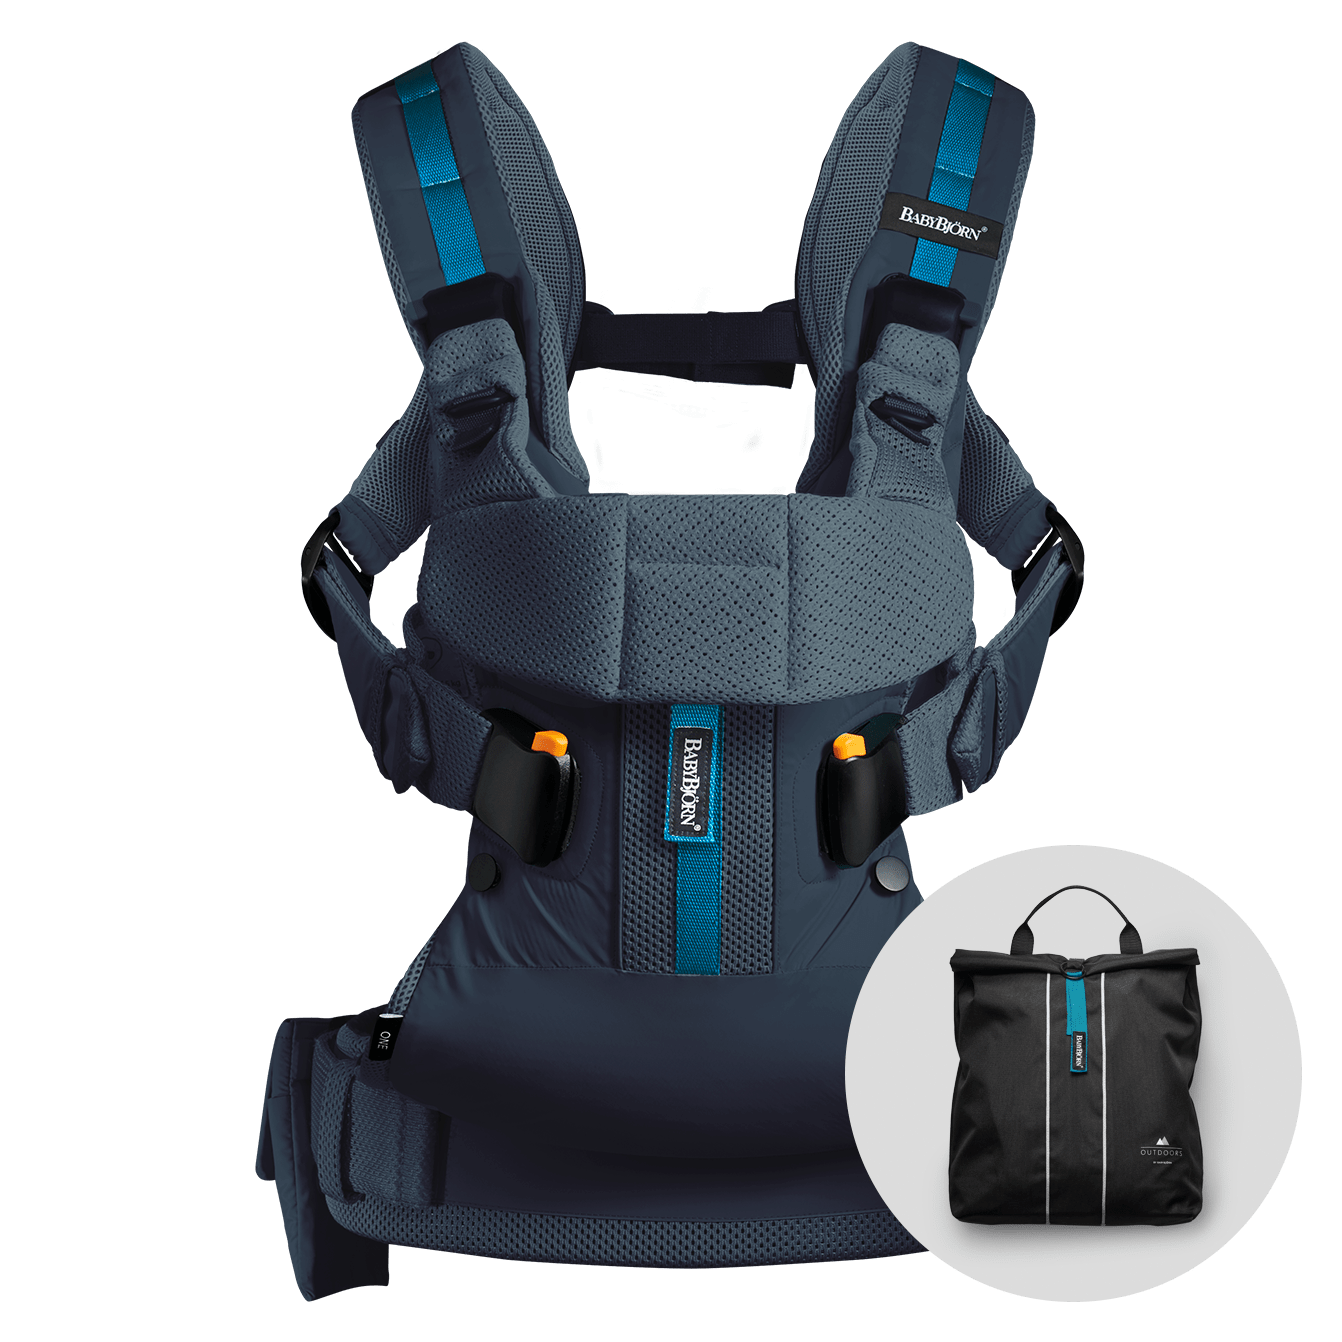 BABYBJÖRN Baby Carrier One Outdoors in dark blue, perfect for an active life.